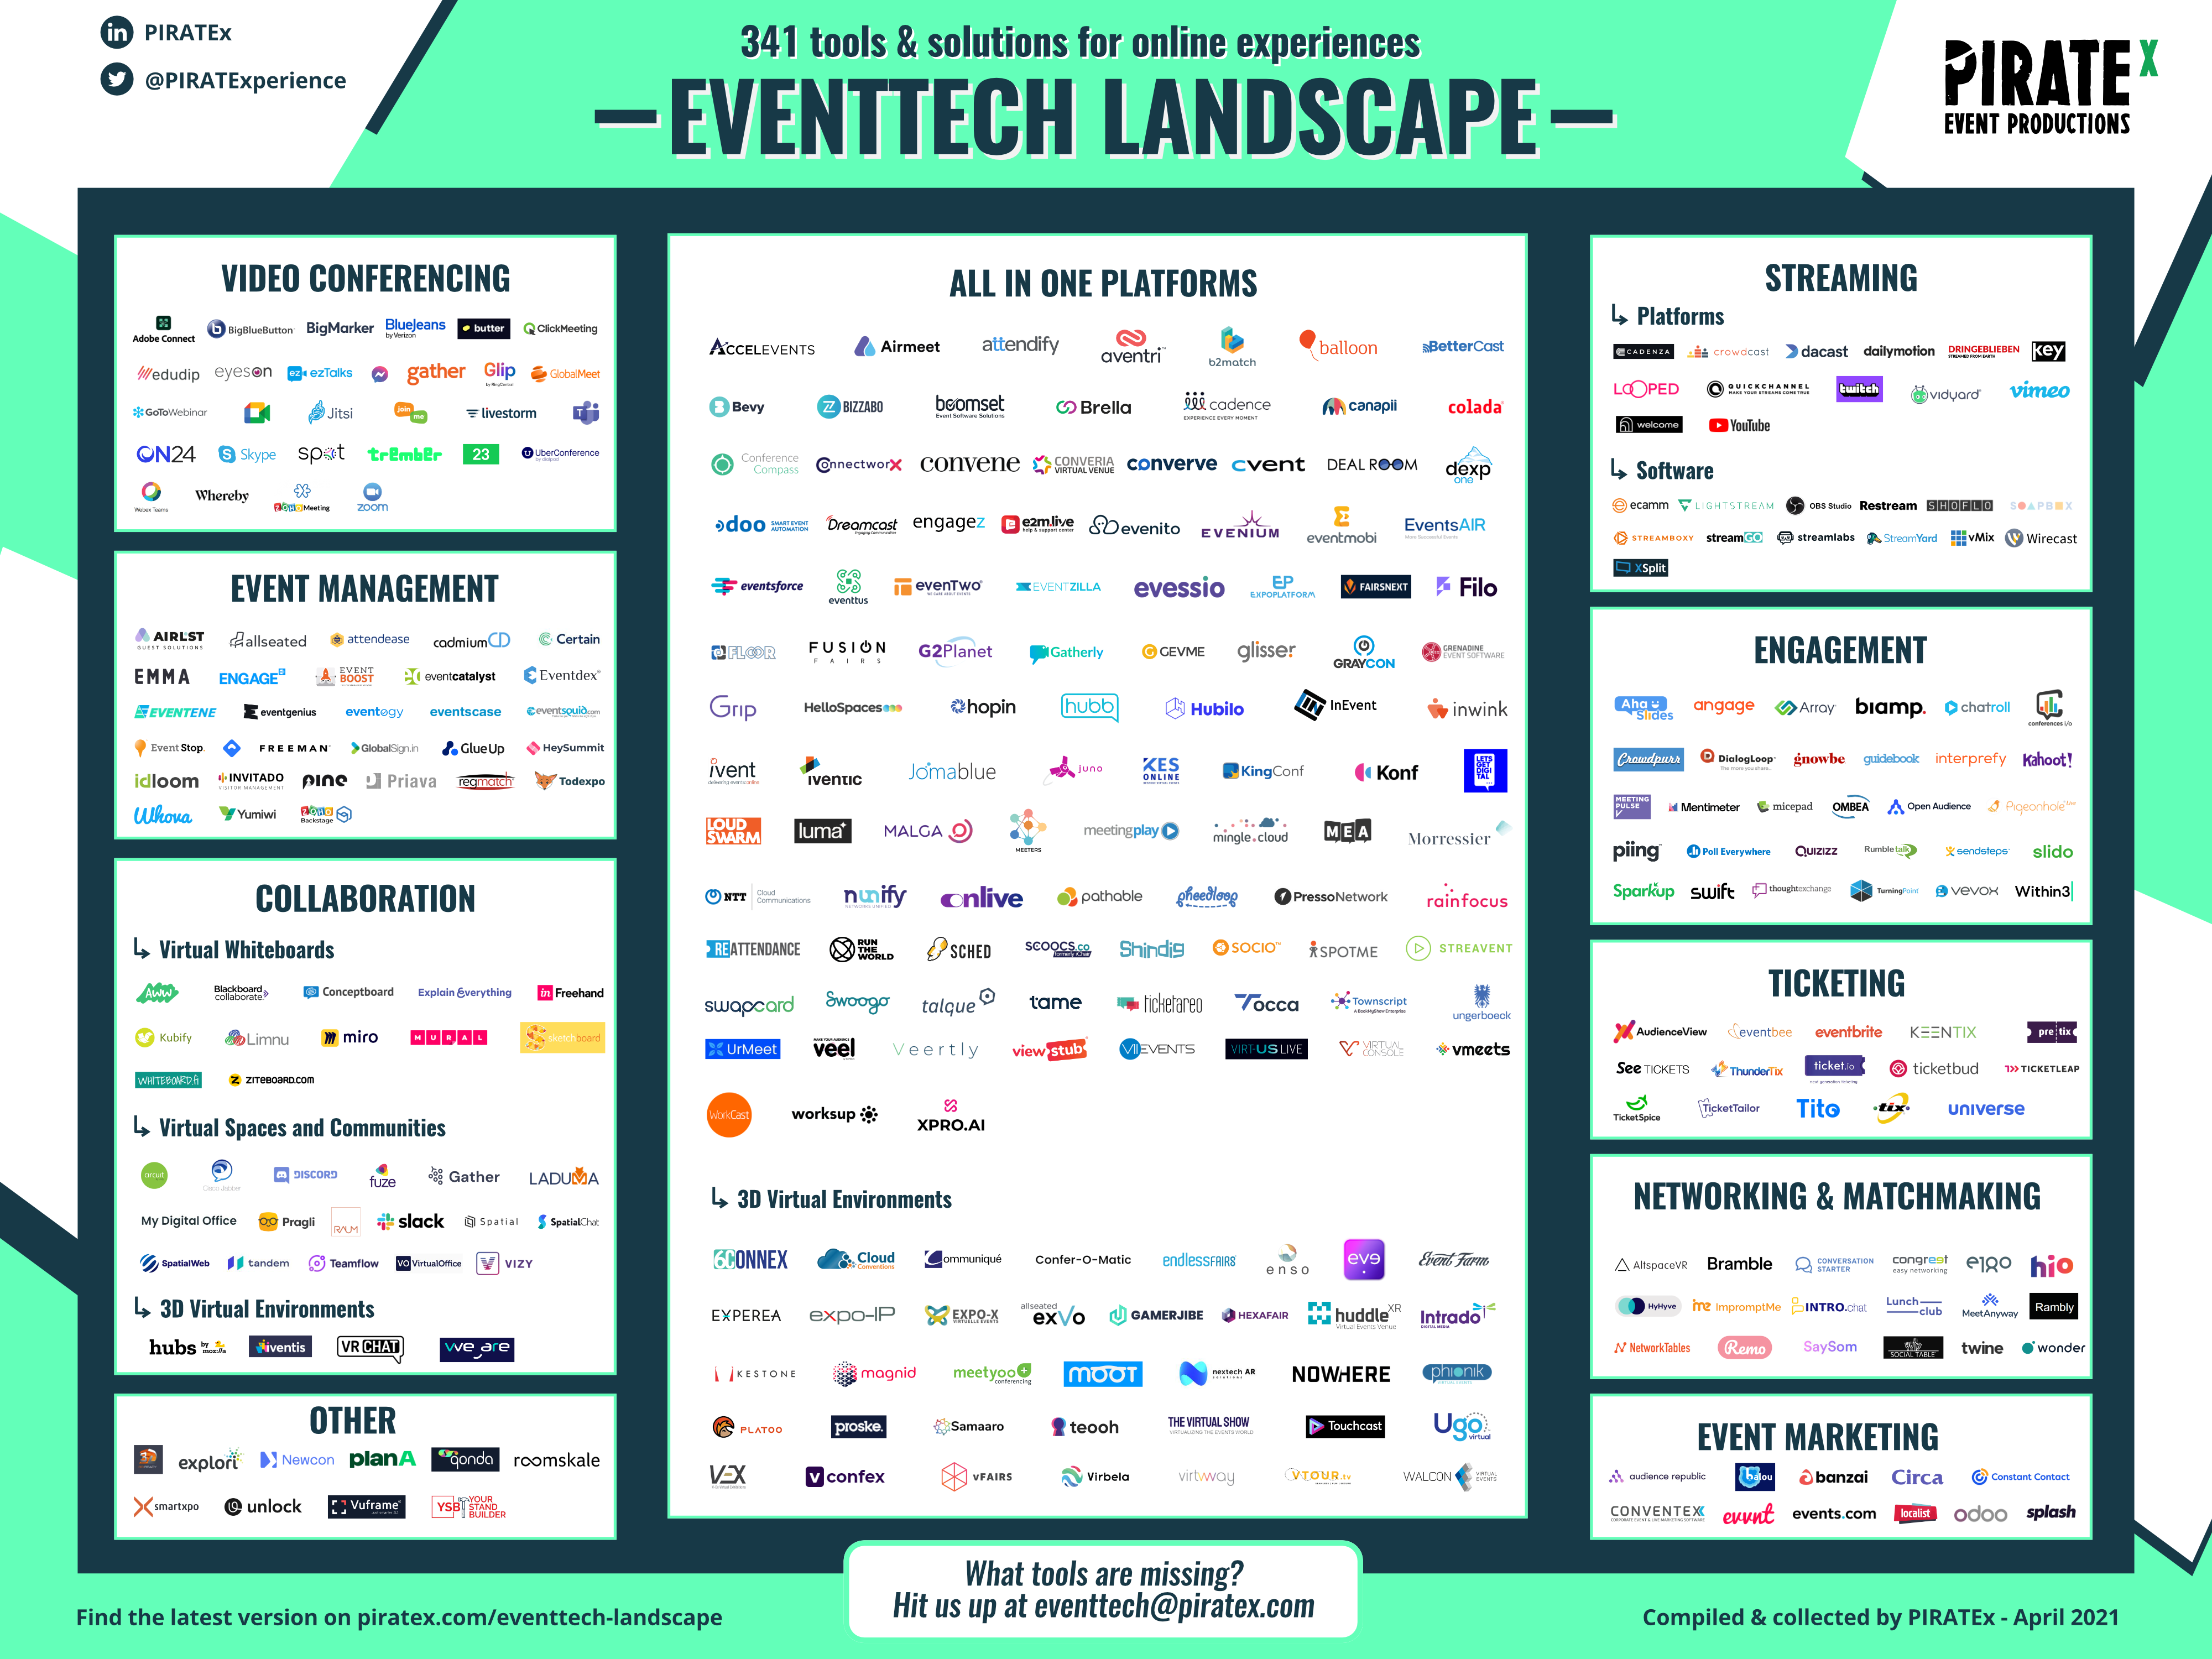 Overview of the 2021 Eventtech Landscape April Update